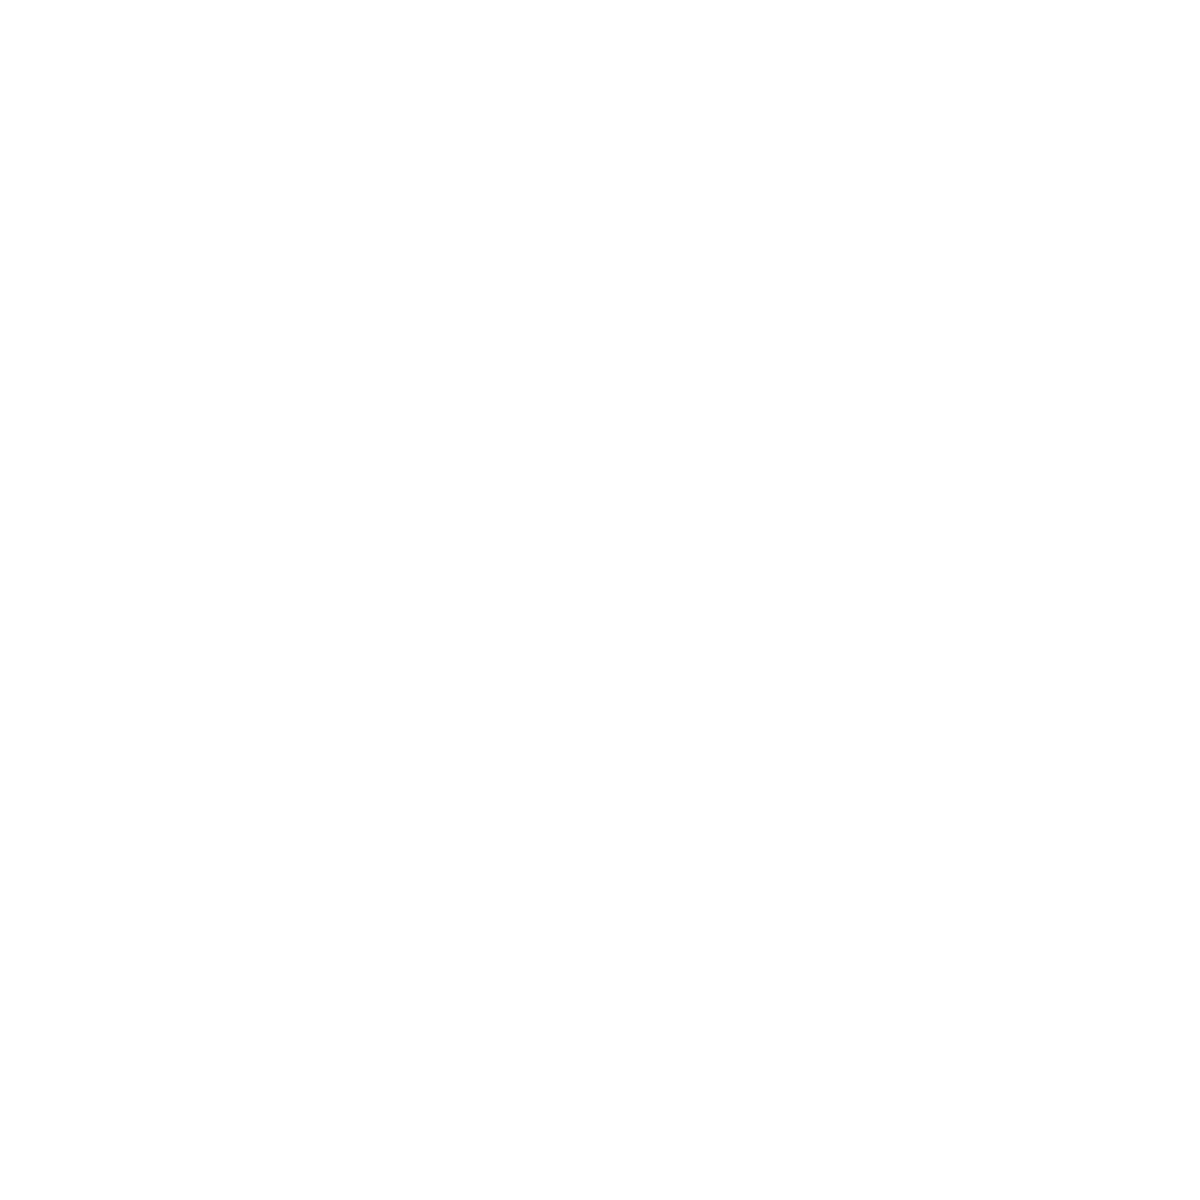 Women in the Word white